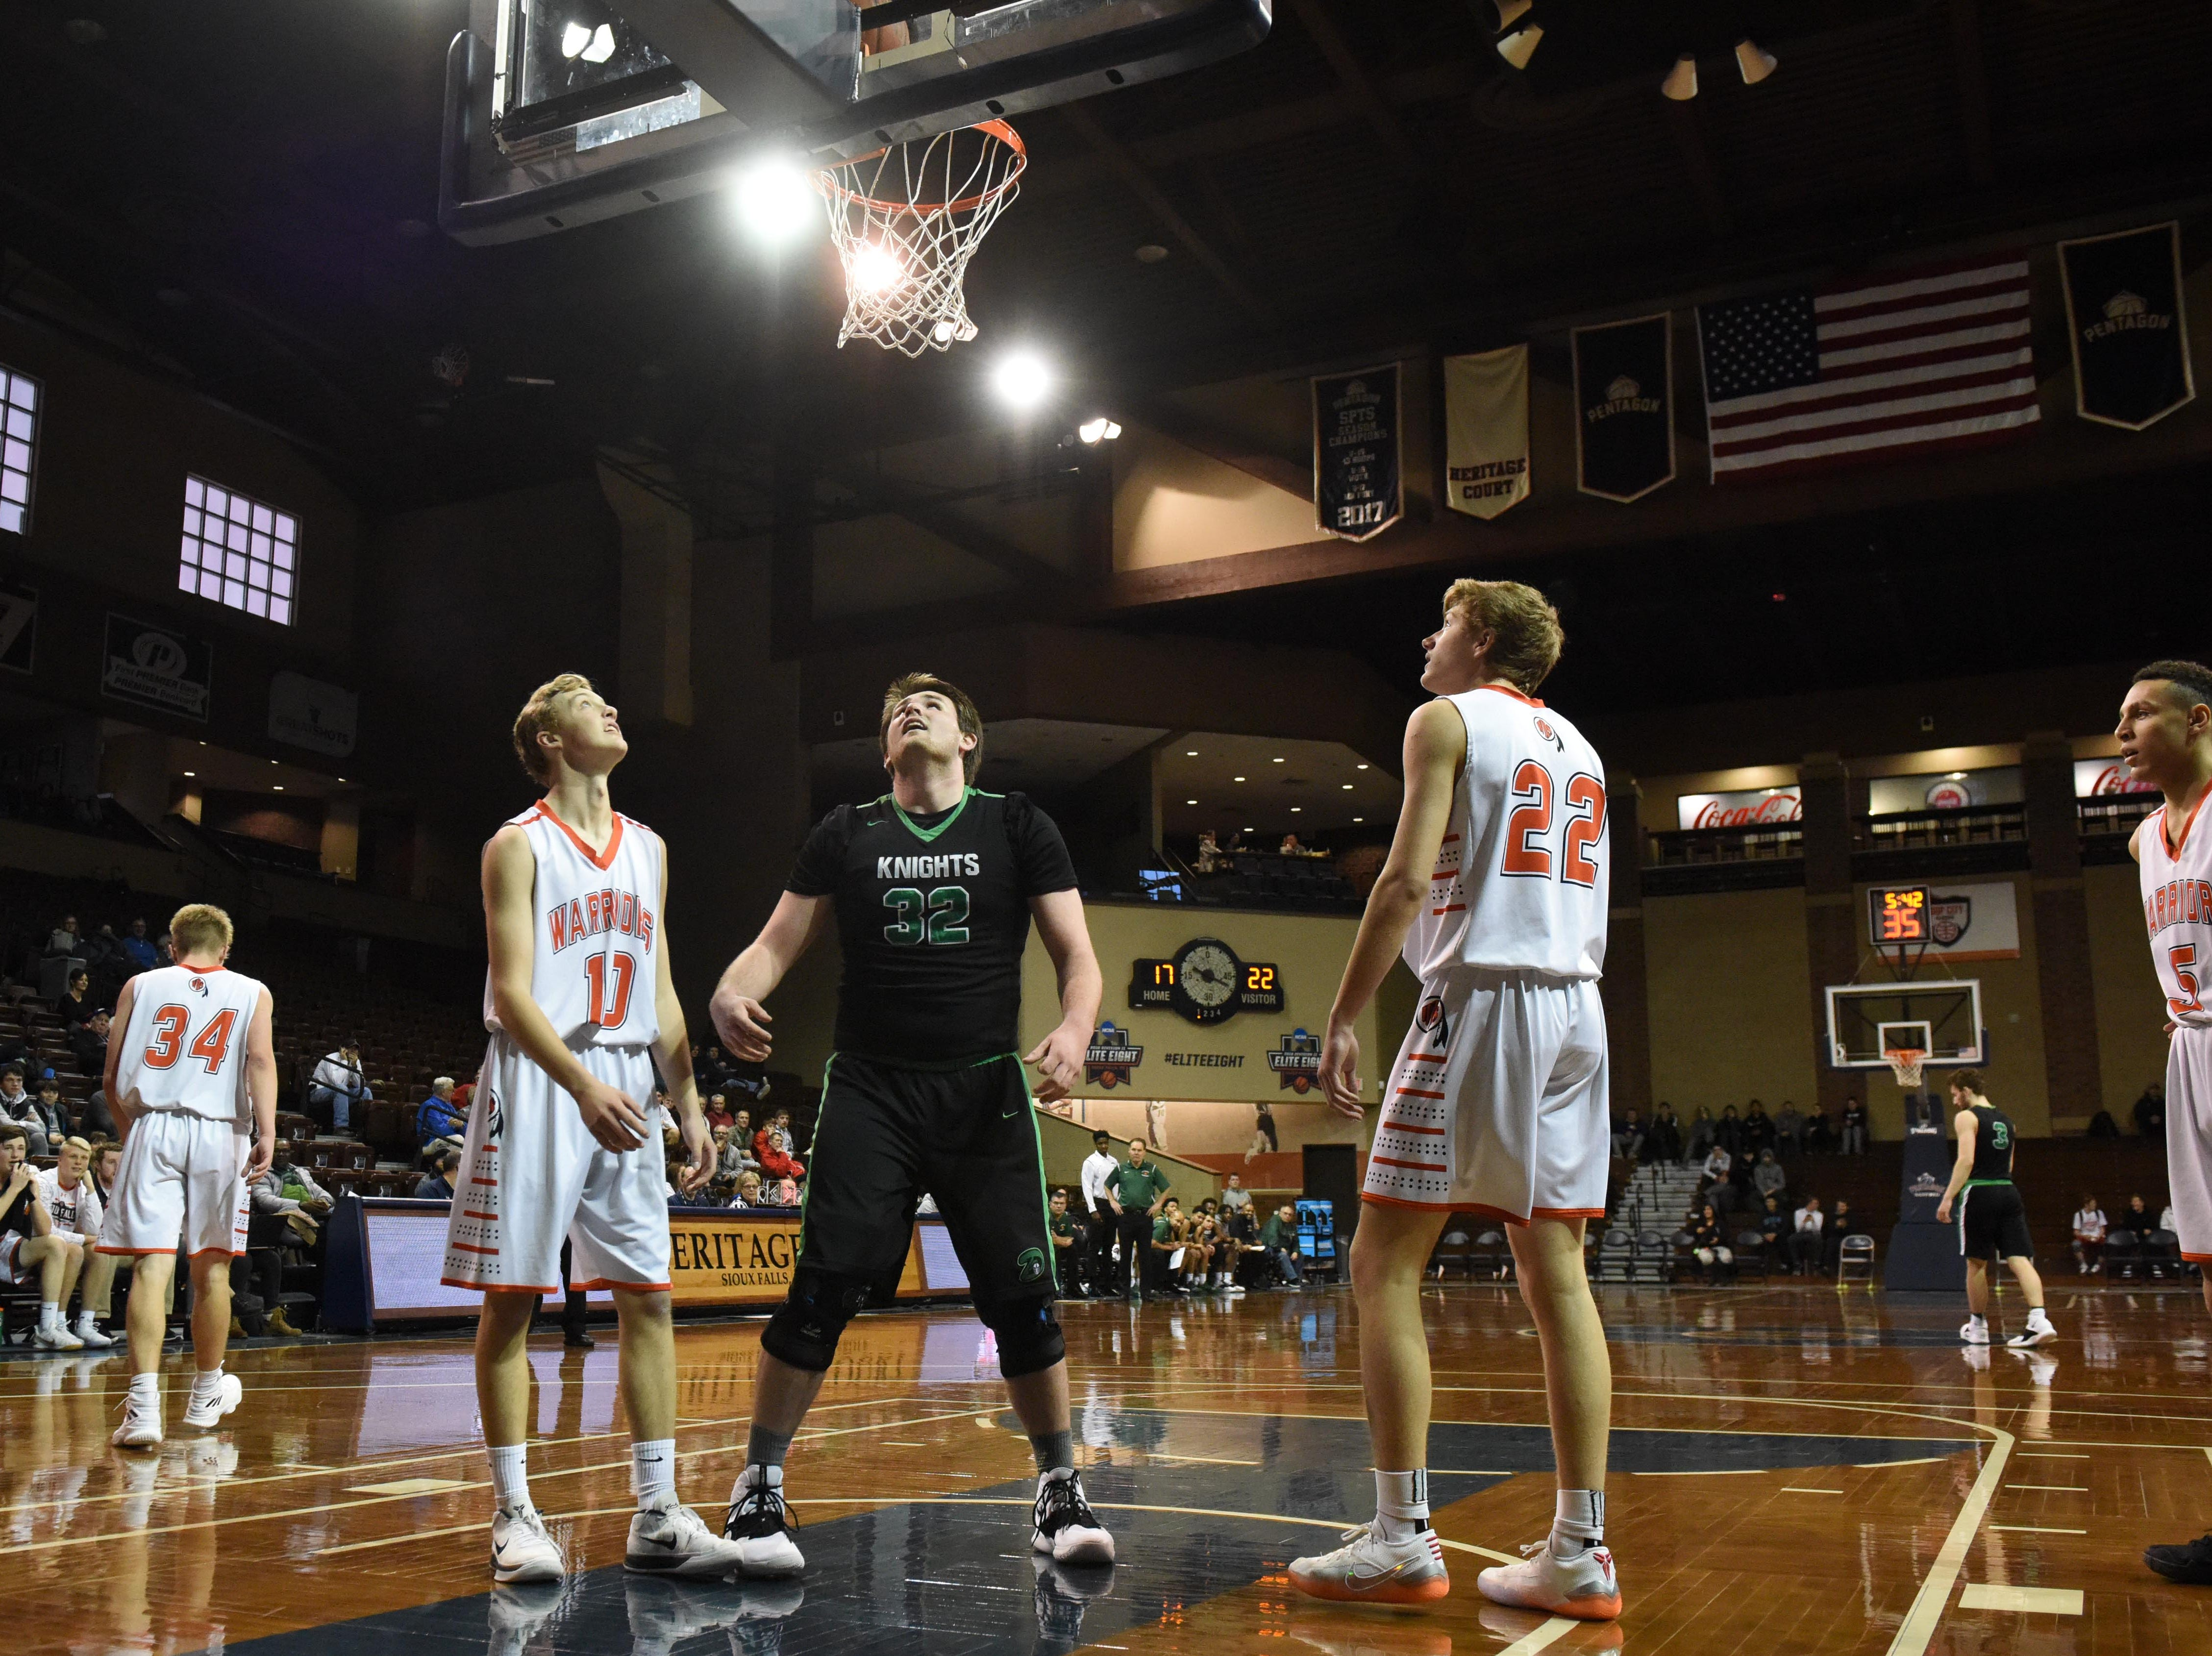 Washington and Dominican players look up at the ball that got stuck at the Hoop City Classic at the Sanford Pentagon in Sioux Falls, S.D., Saturday, Dec. 29, 2018.